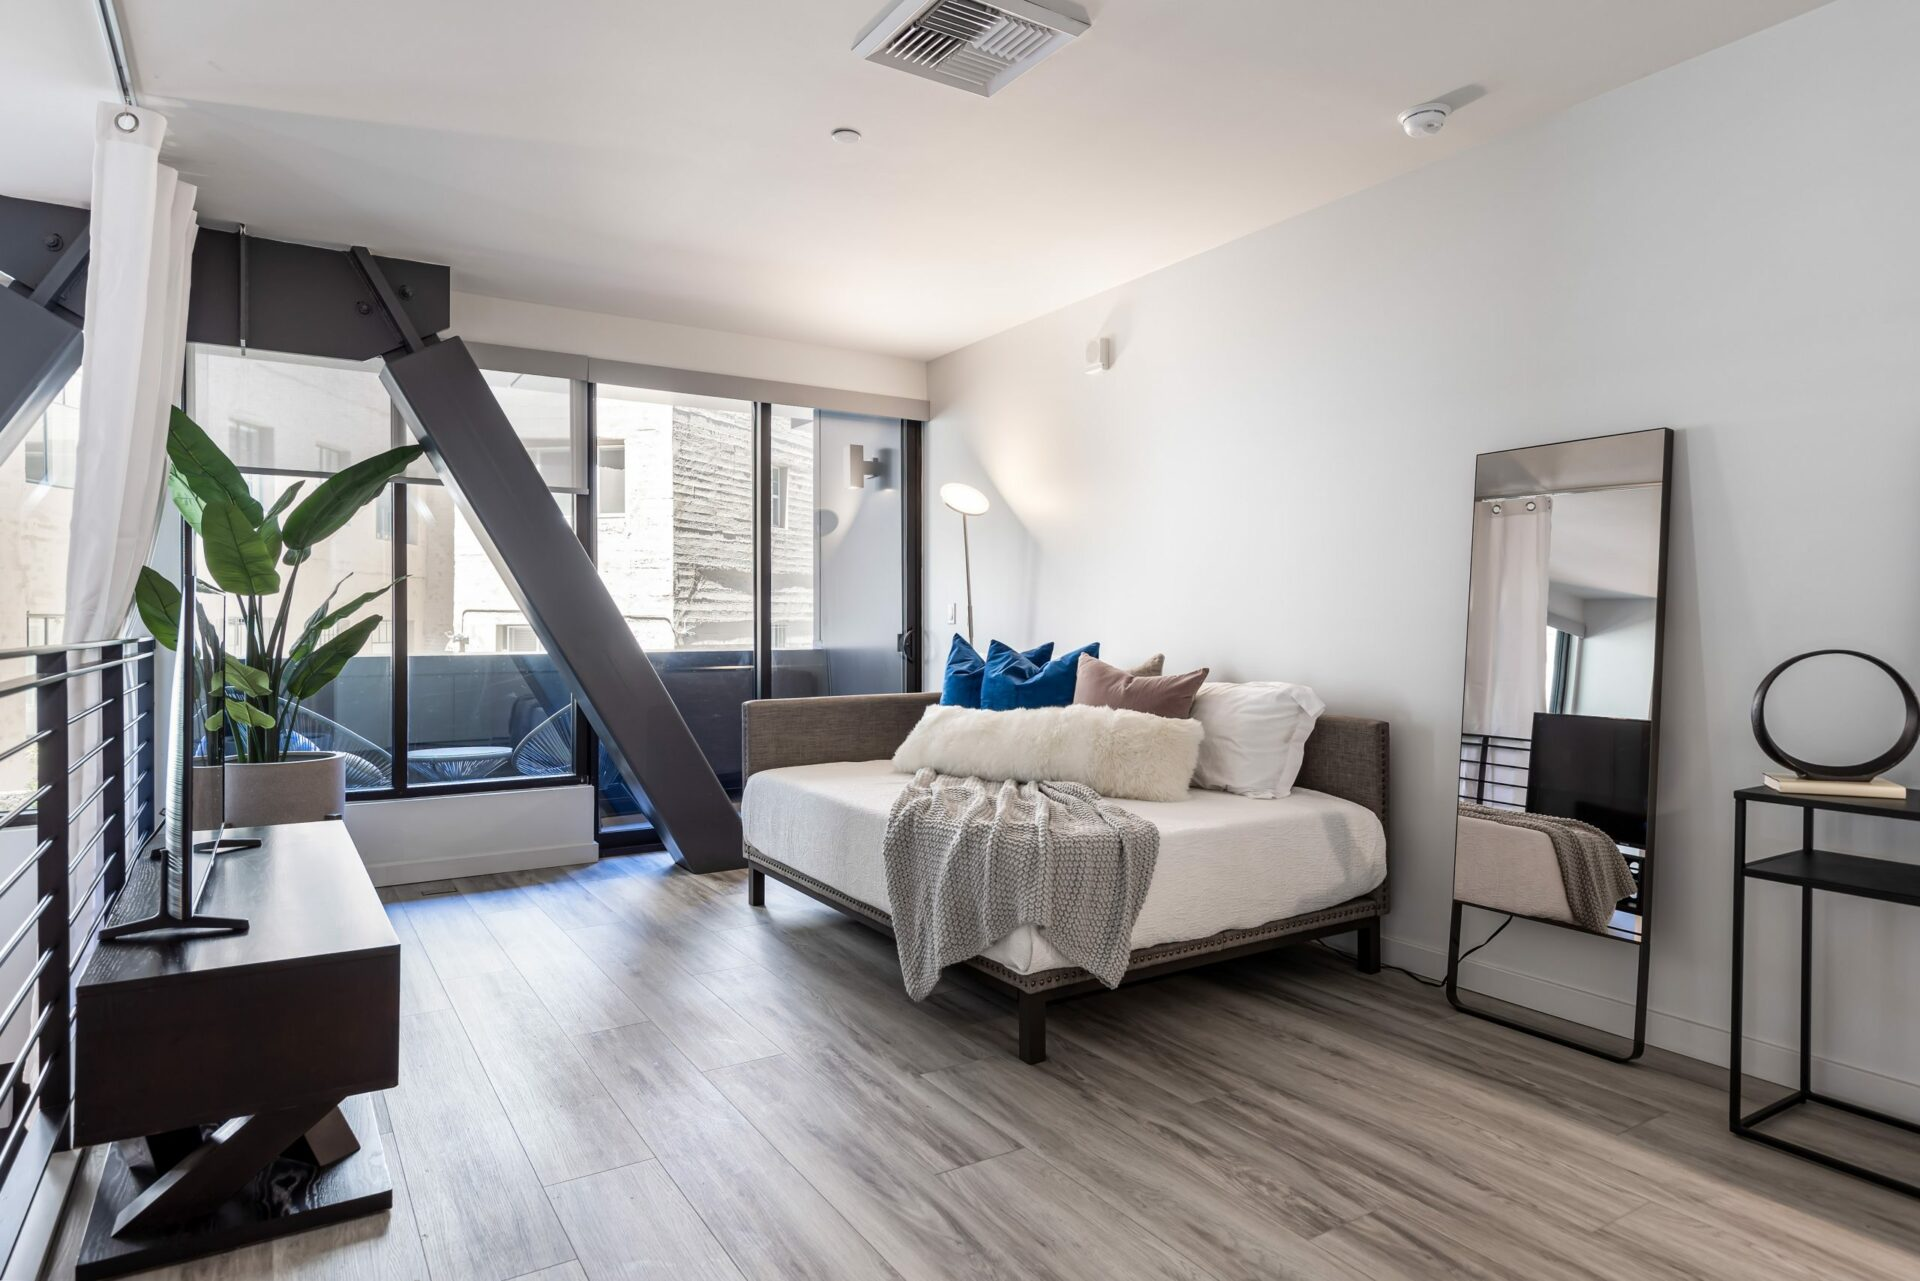 2 Bed Townhome Lofted Bedroom